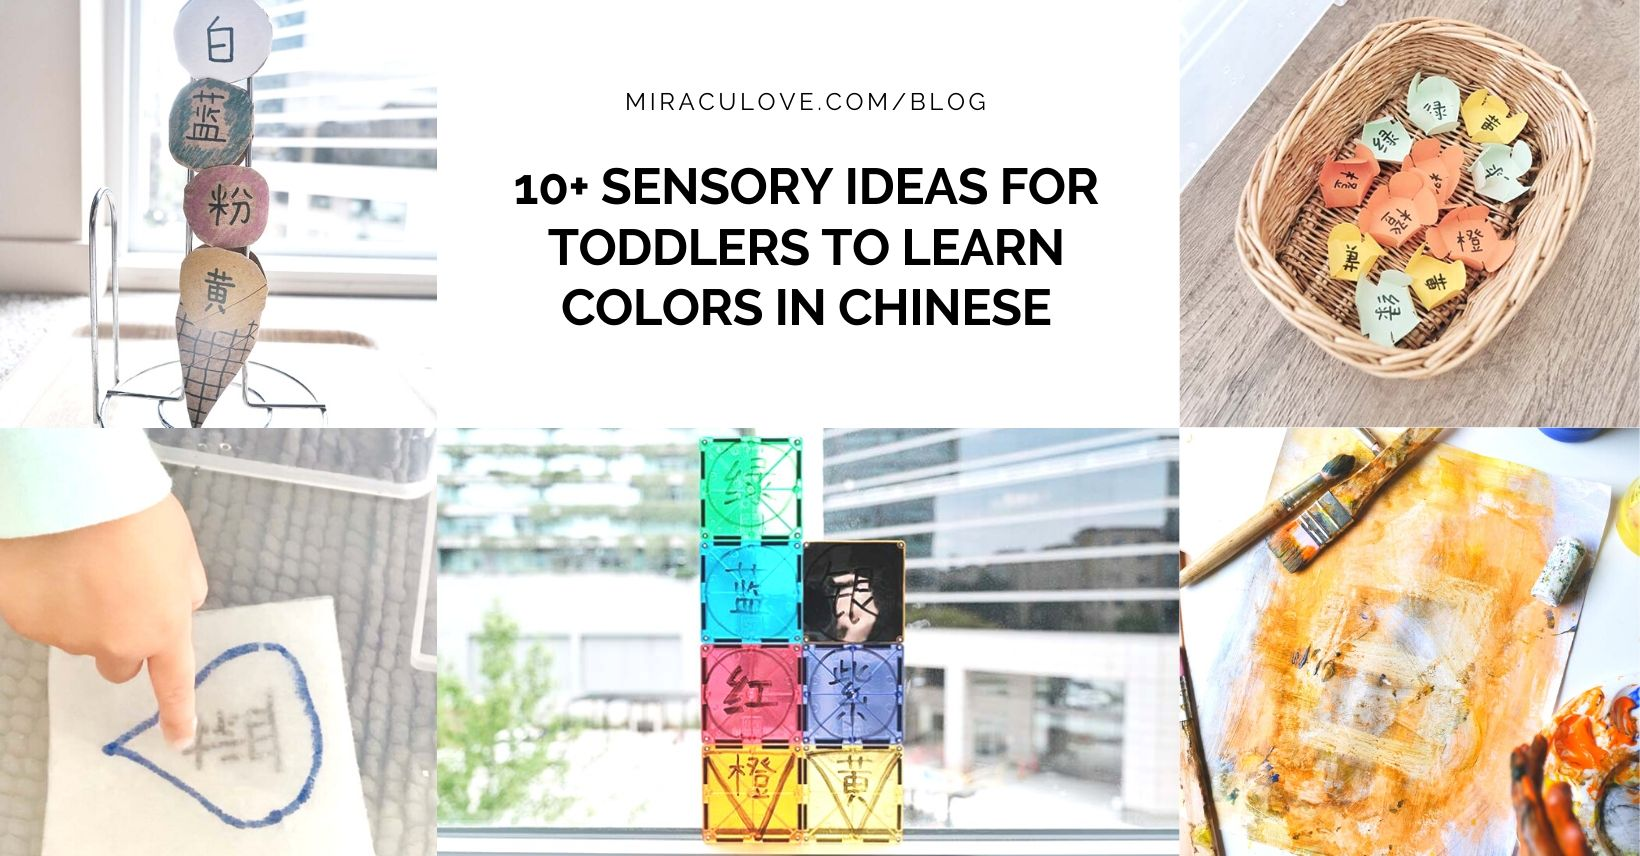 10+ Sensory Ideas for Toddlers to Learn Colors in Chinese